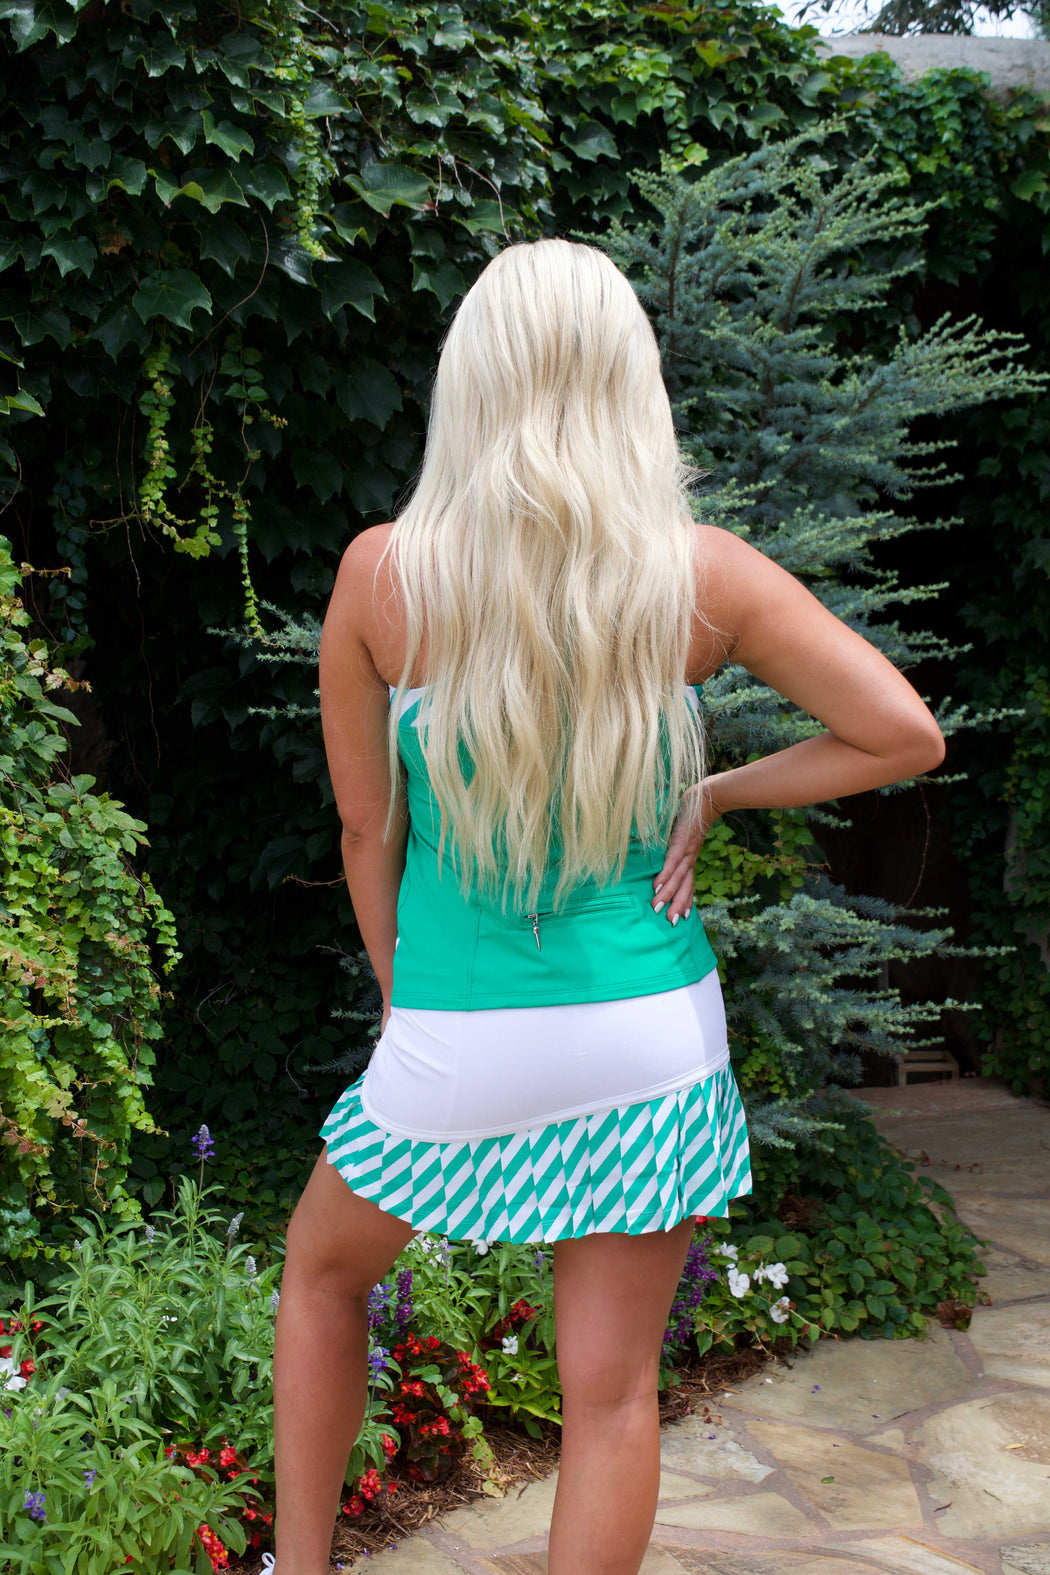 NEW! Asymmetrical Pleated Golf Skirt - White with Envy Green Striped Pleats